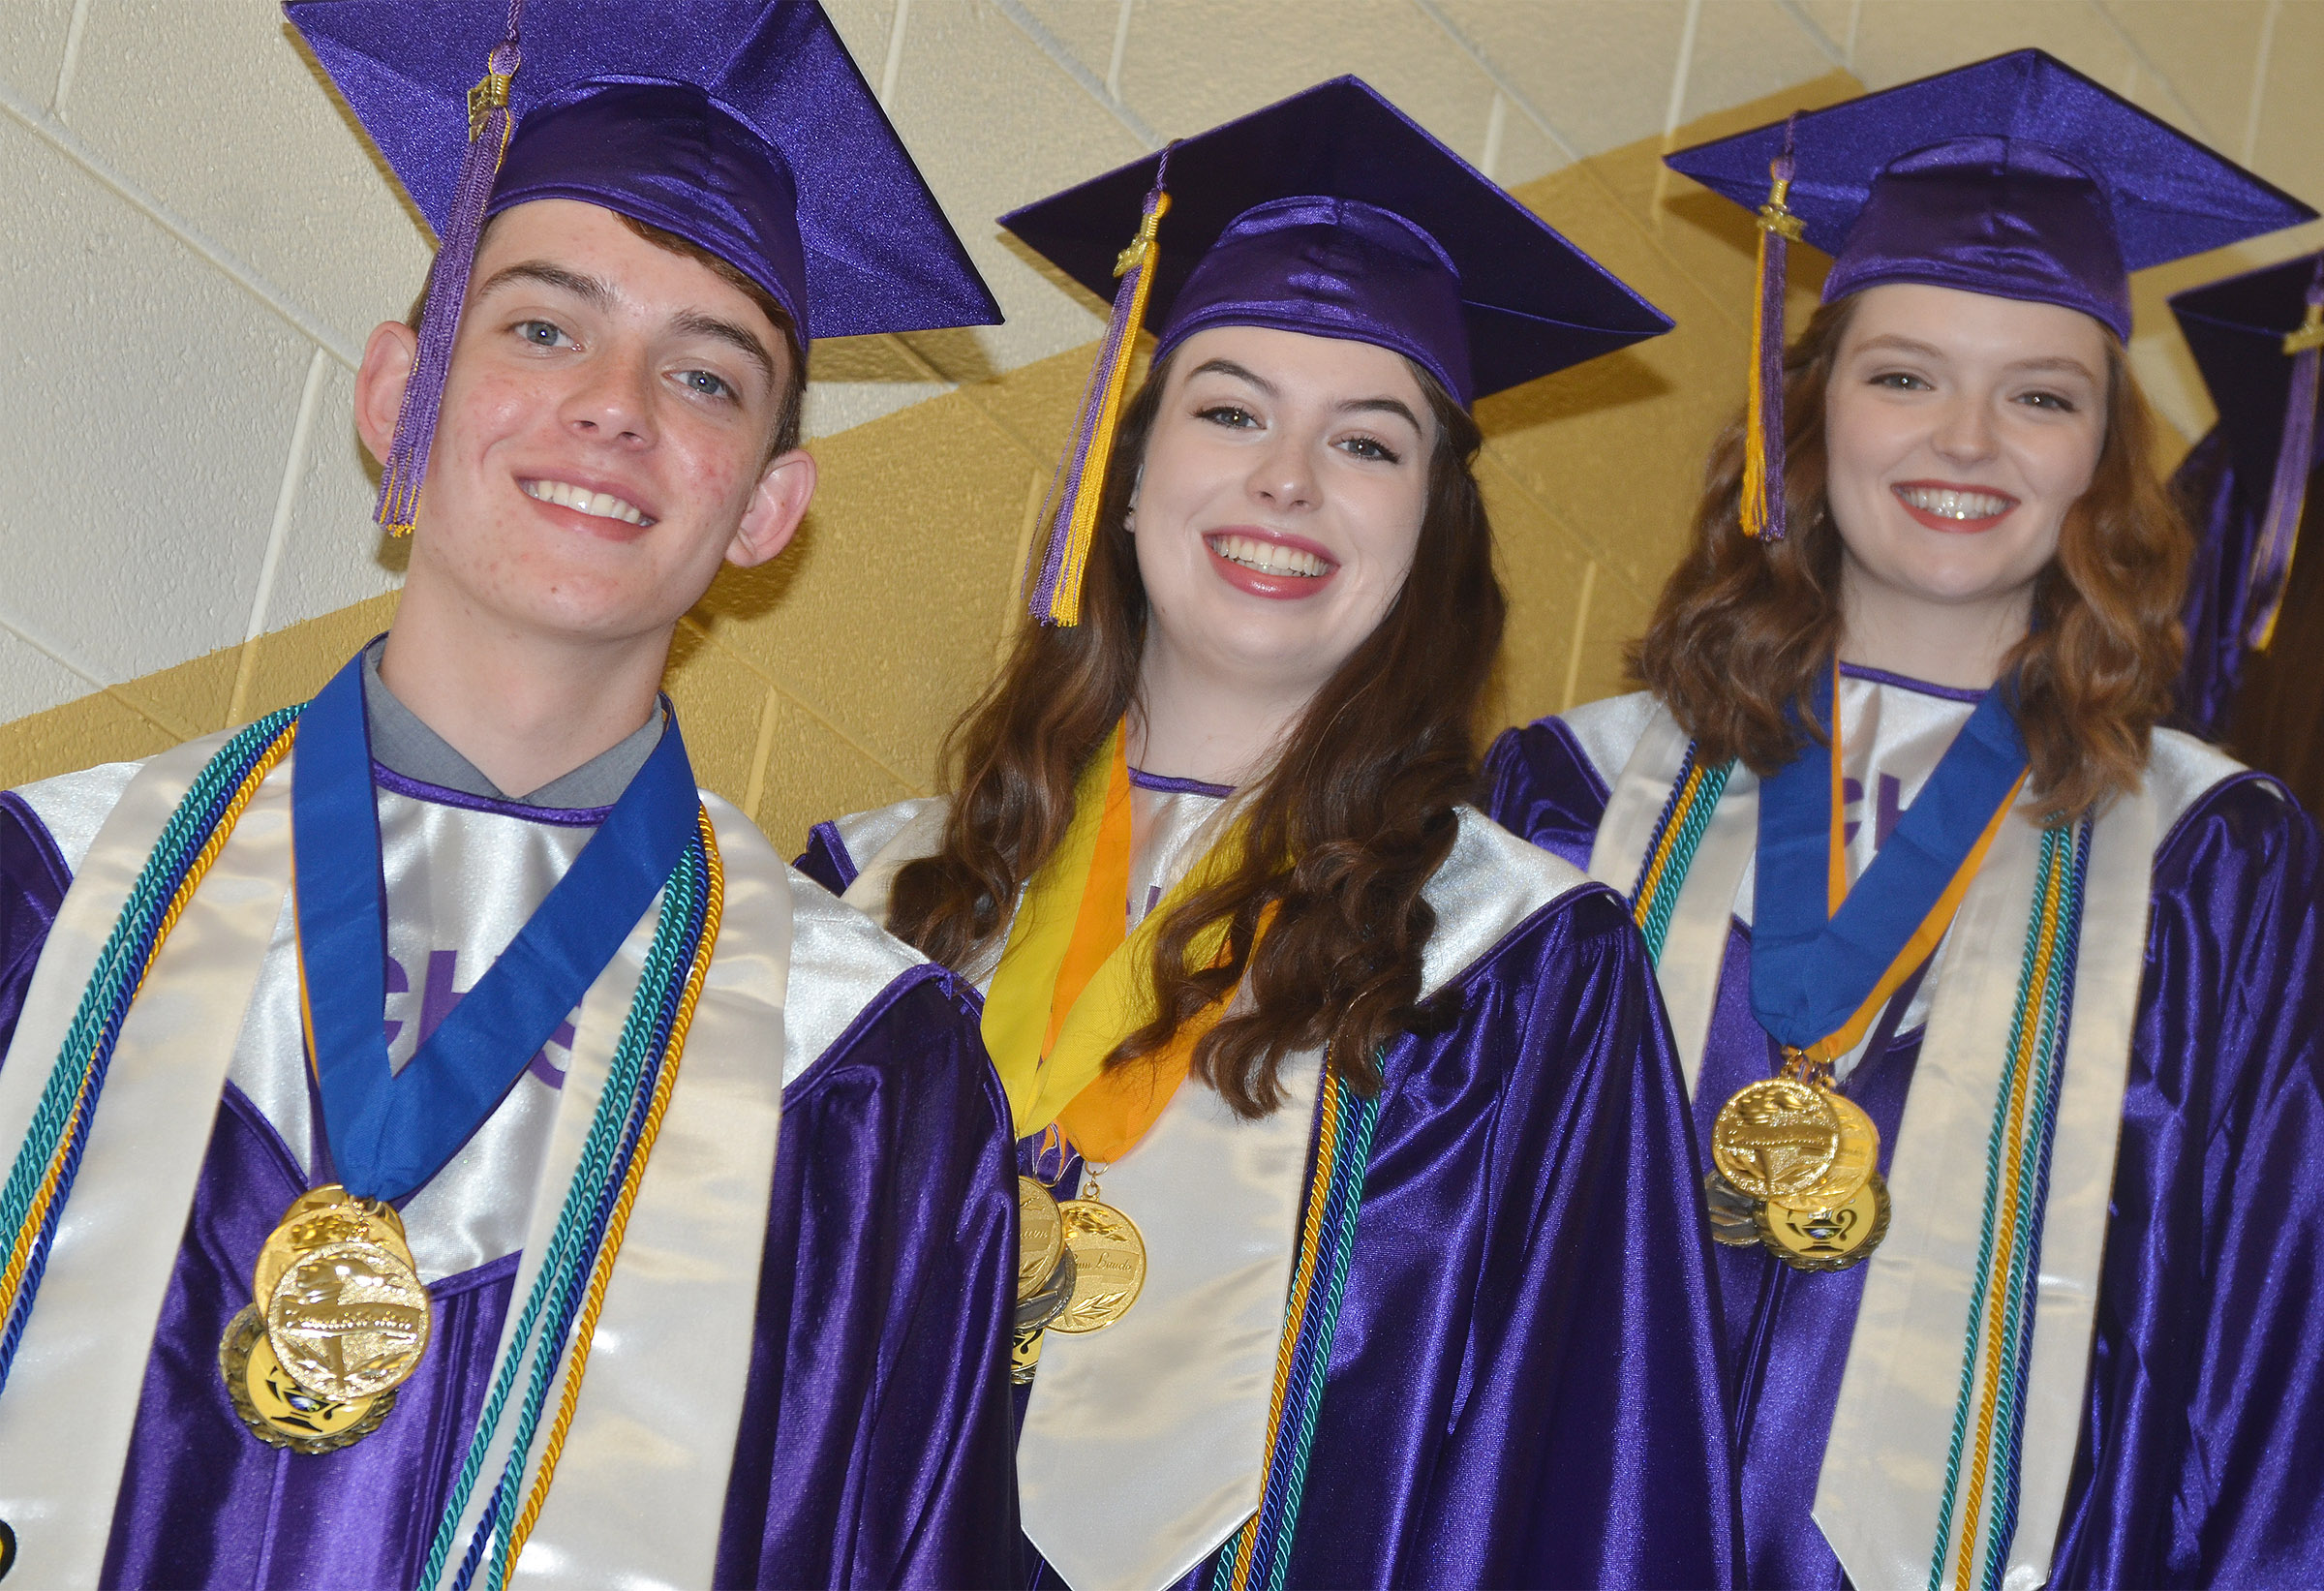 From left, Murphy Lamb, Laura Lamb and Blair Lamb, who graduated from CHS in May, were named AP Scholars for scoring high marks on their AP exams during the 2016-2017 school year.